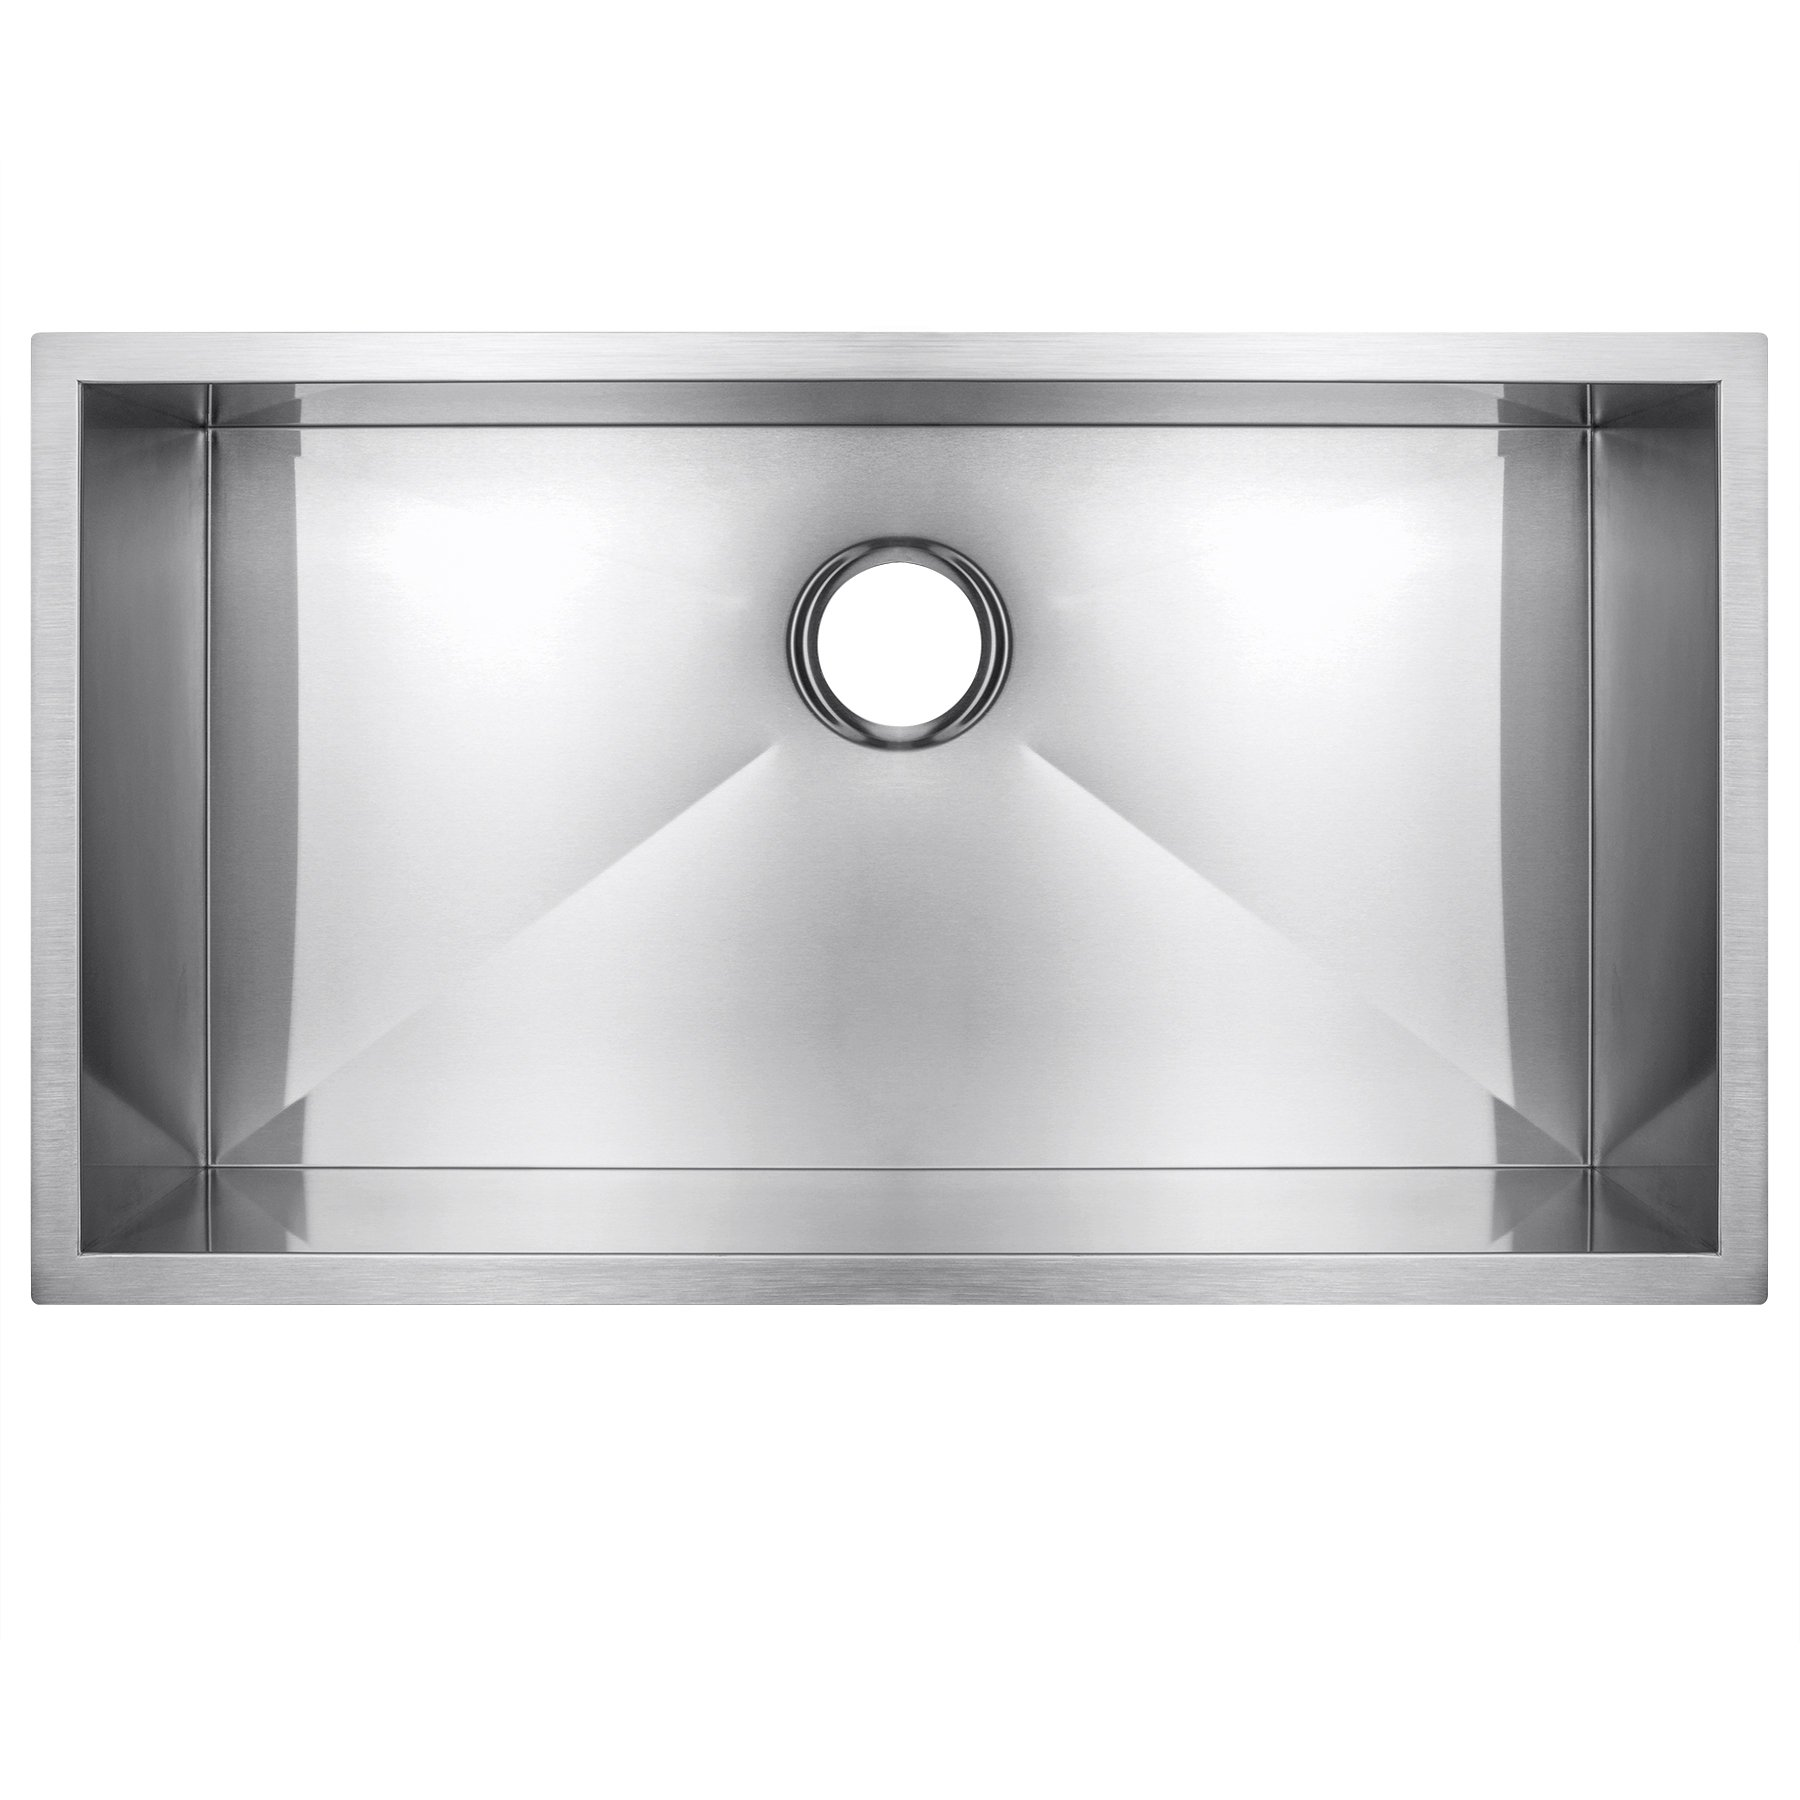 Golden Vantage 32'' x 18'' x 9'' Single Basin Bowl Undermount Handmade 18 Gauge Stainless Steel Kitchen Sink